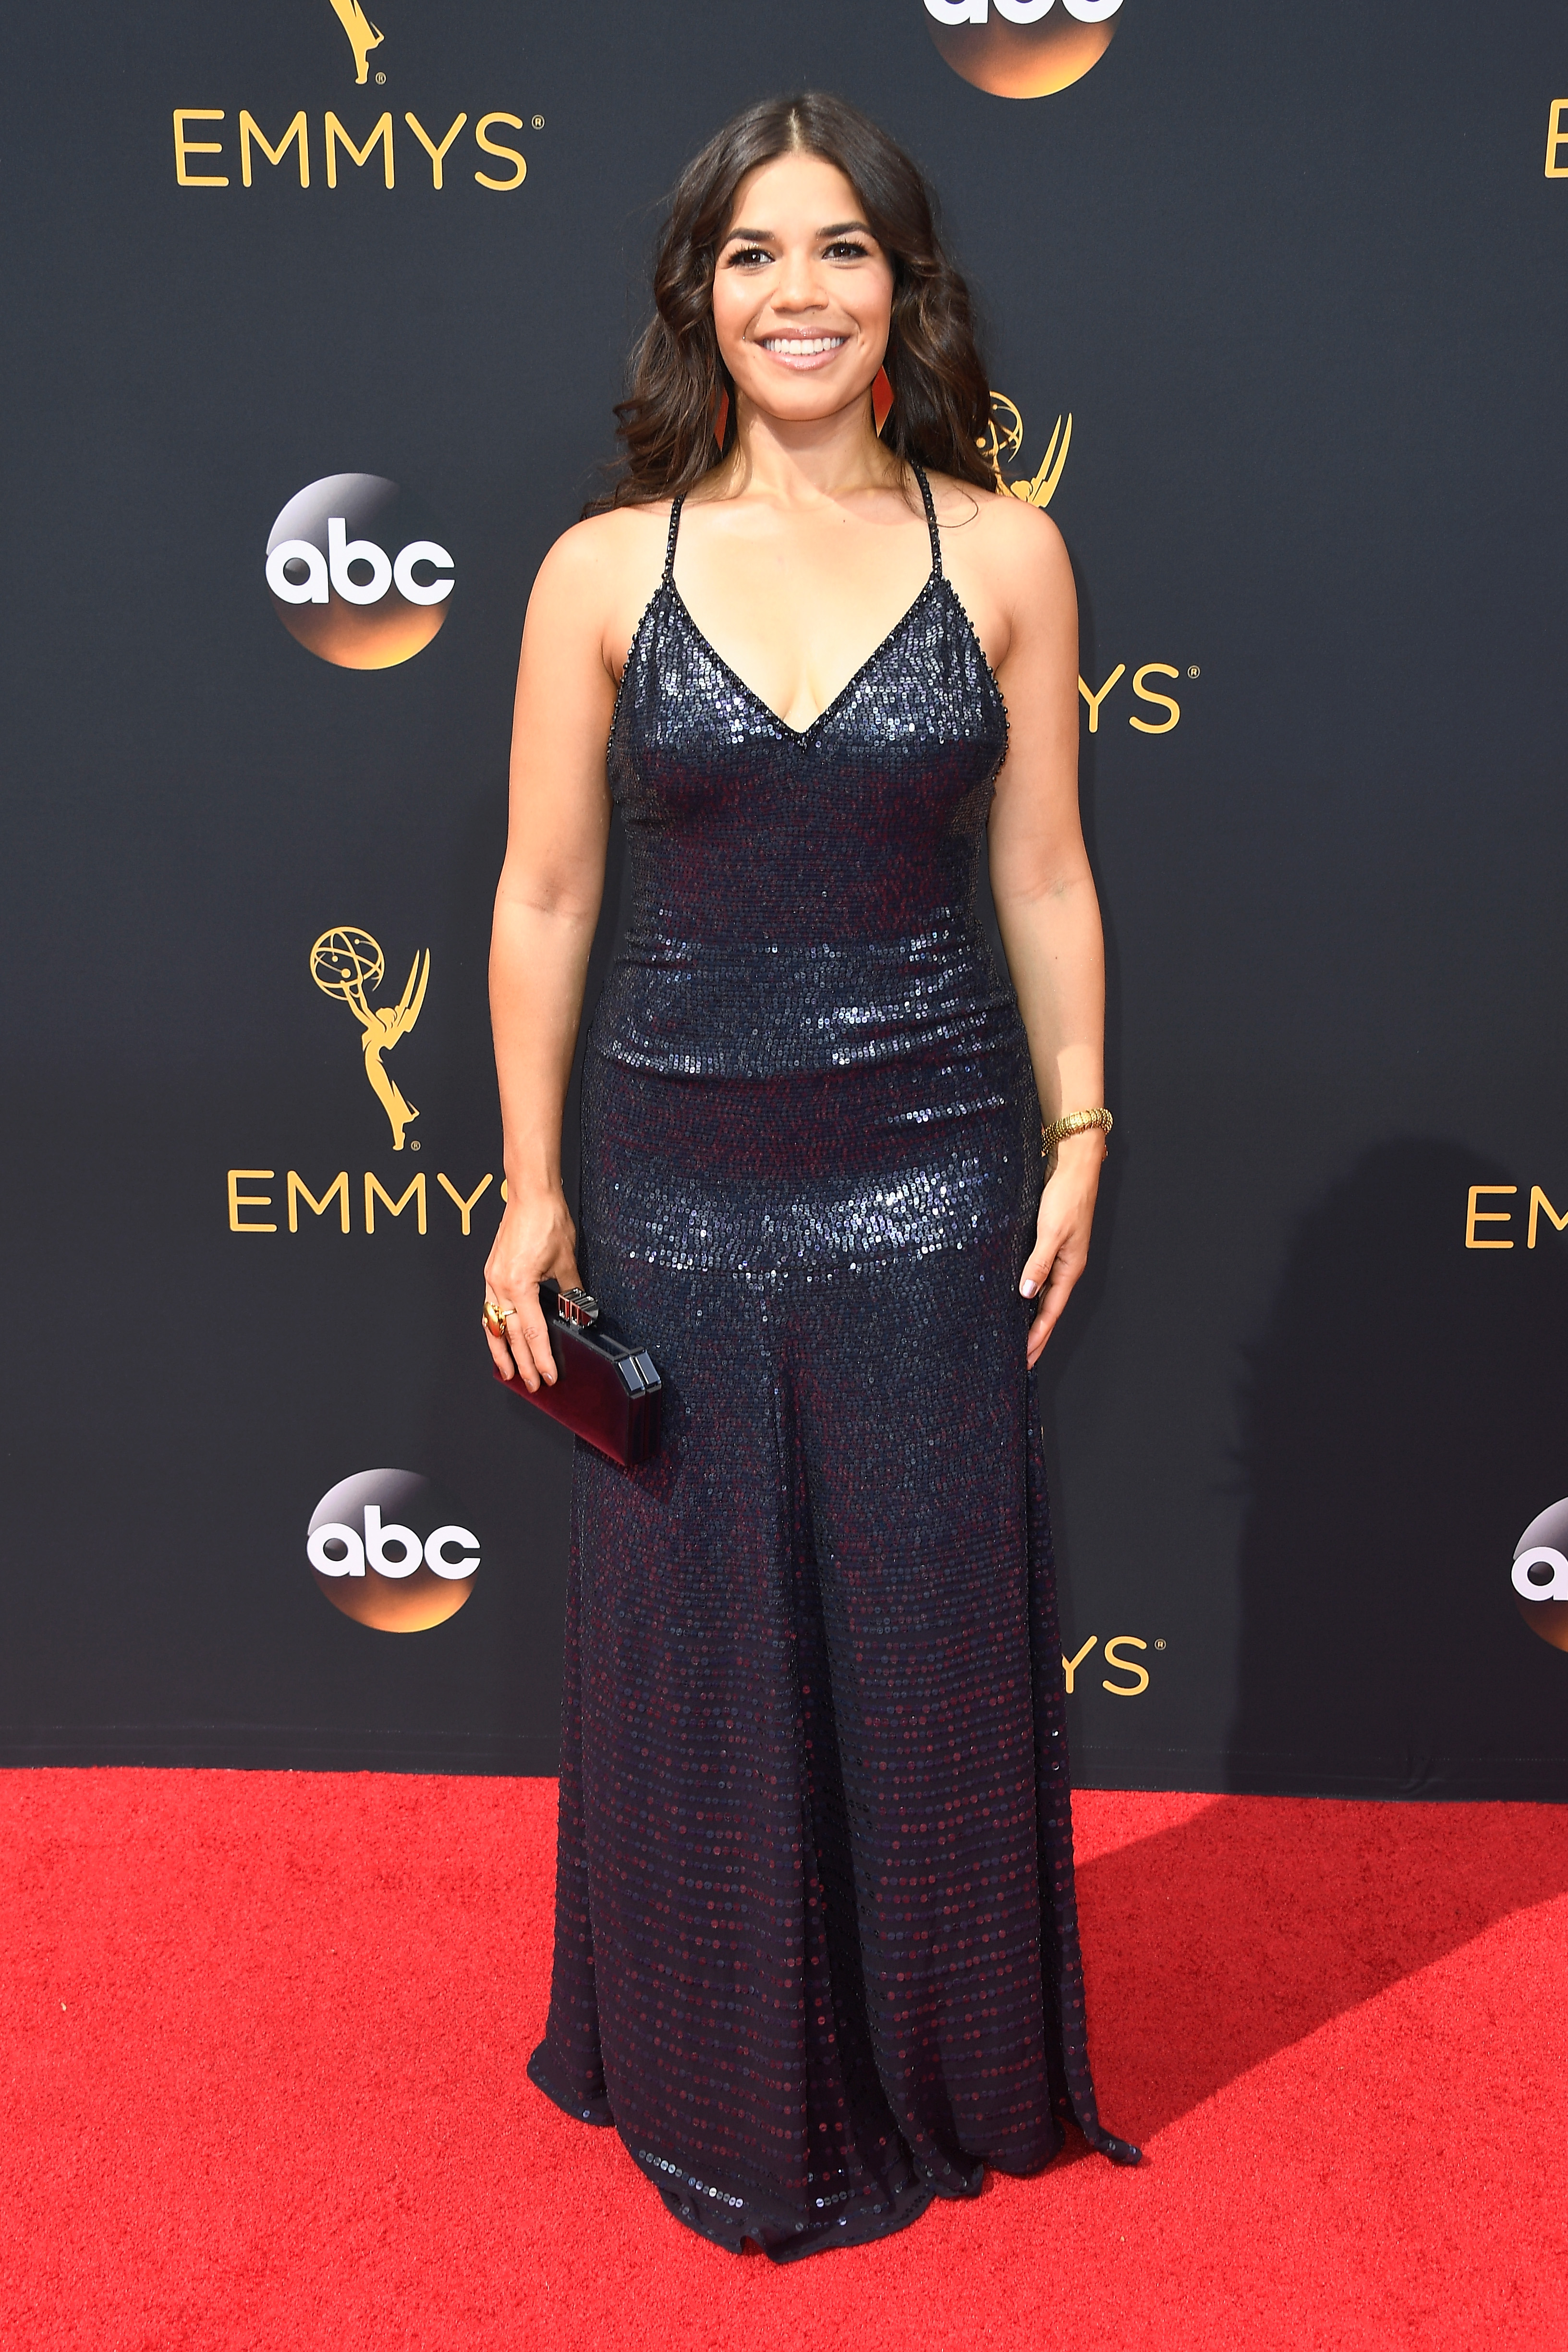 LOS ANGELES, CA - SEPTEMBER 18: Actress America Ferrera attends the 68th Annual Primetime Emmy Awards at Microsoft Theater on September 18, 2016 in Los Angeles, California. (Photo by Frazer Harrison/Getty Images)